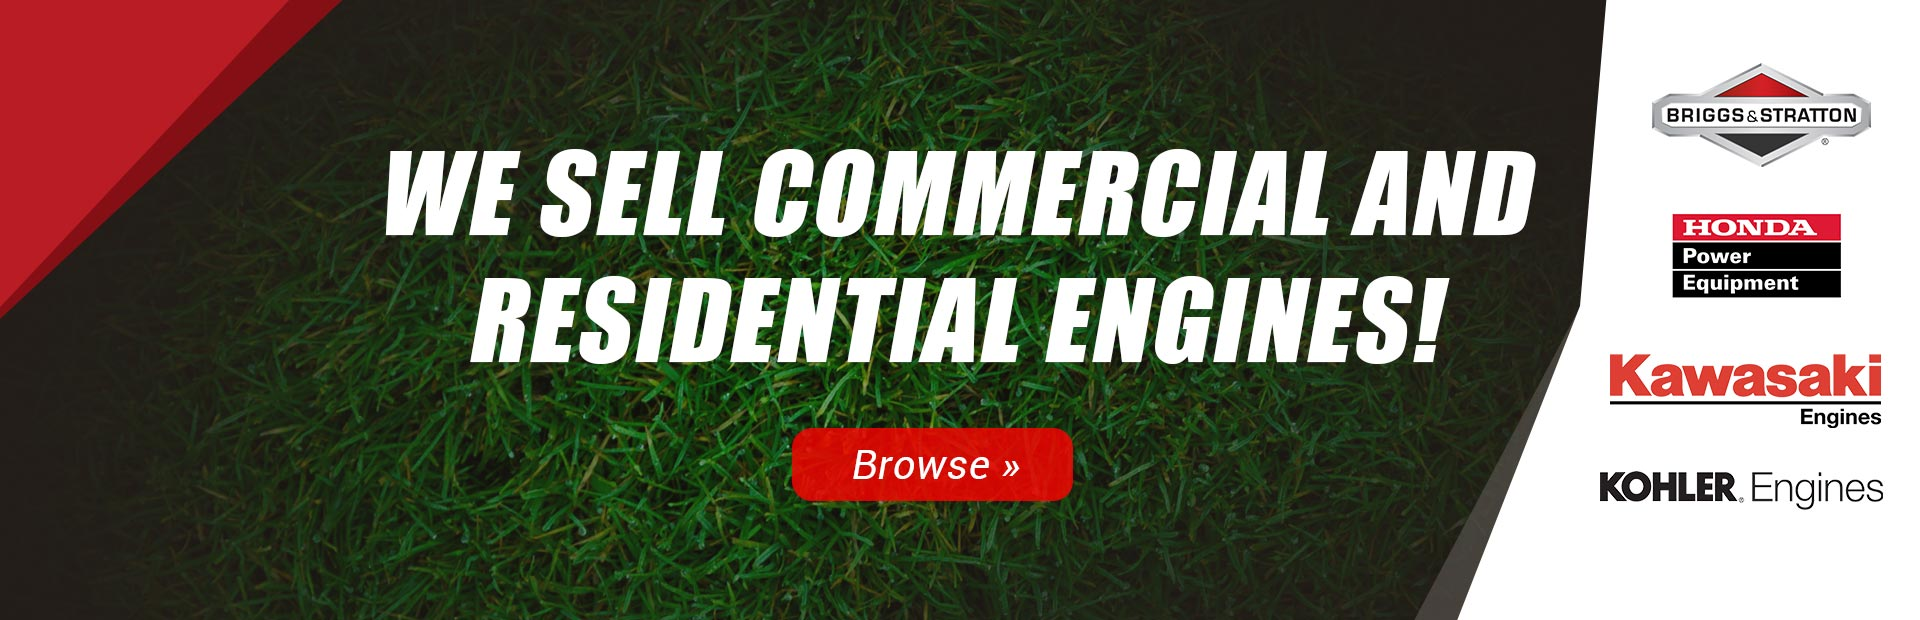 We Sell Residential and Commercial Engines